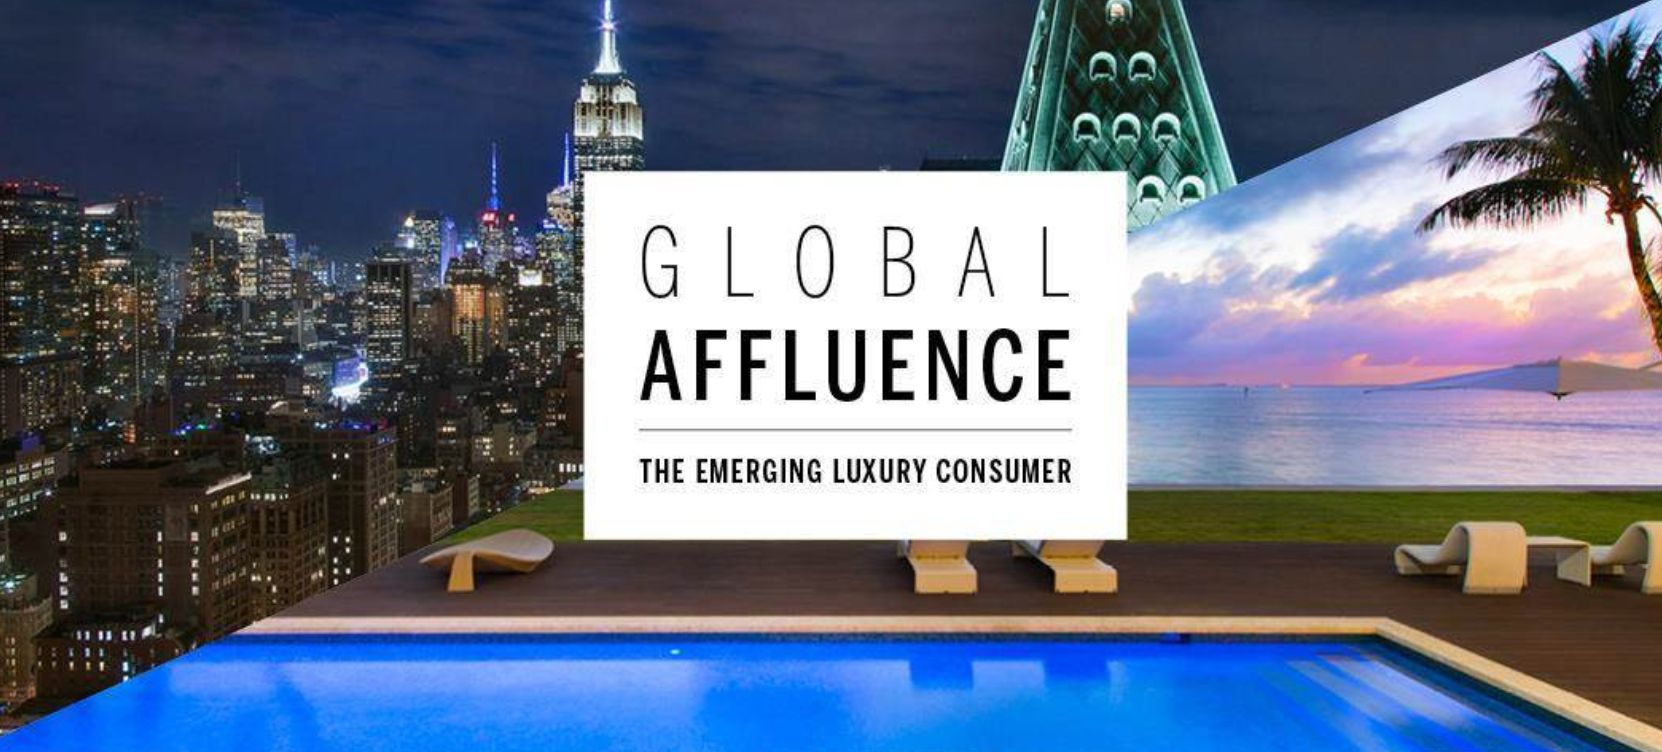 Global Affluence